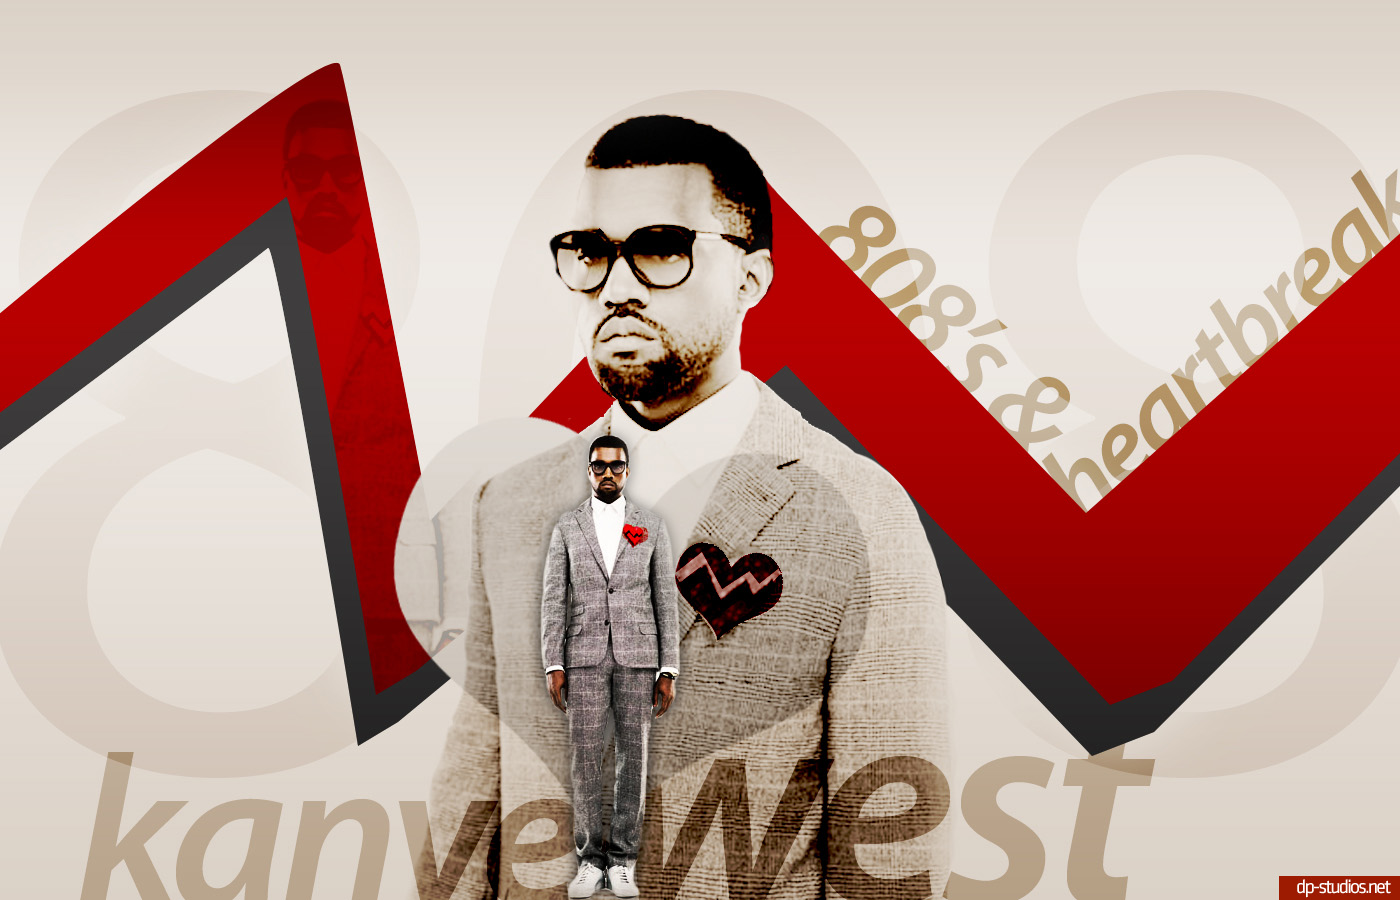 Kanye West 808s And Heartbreak Free